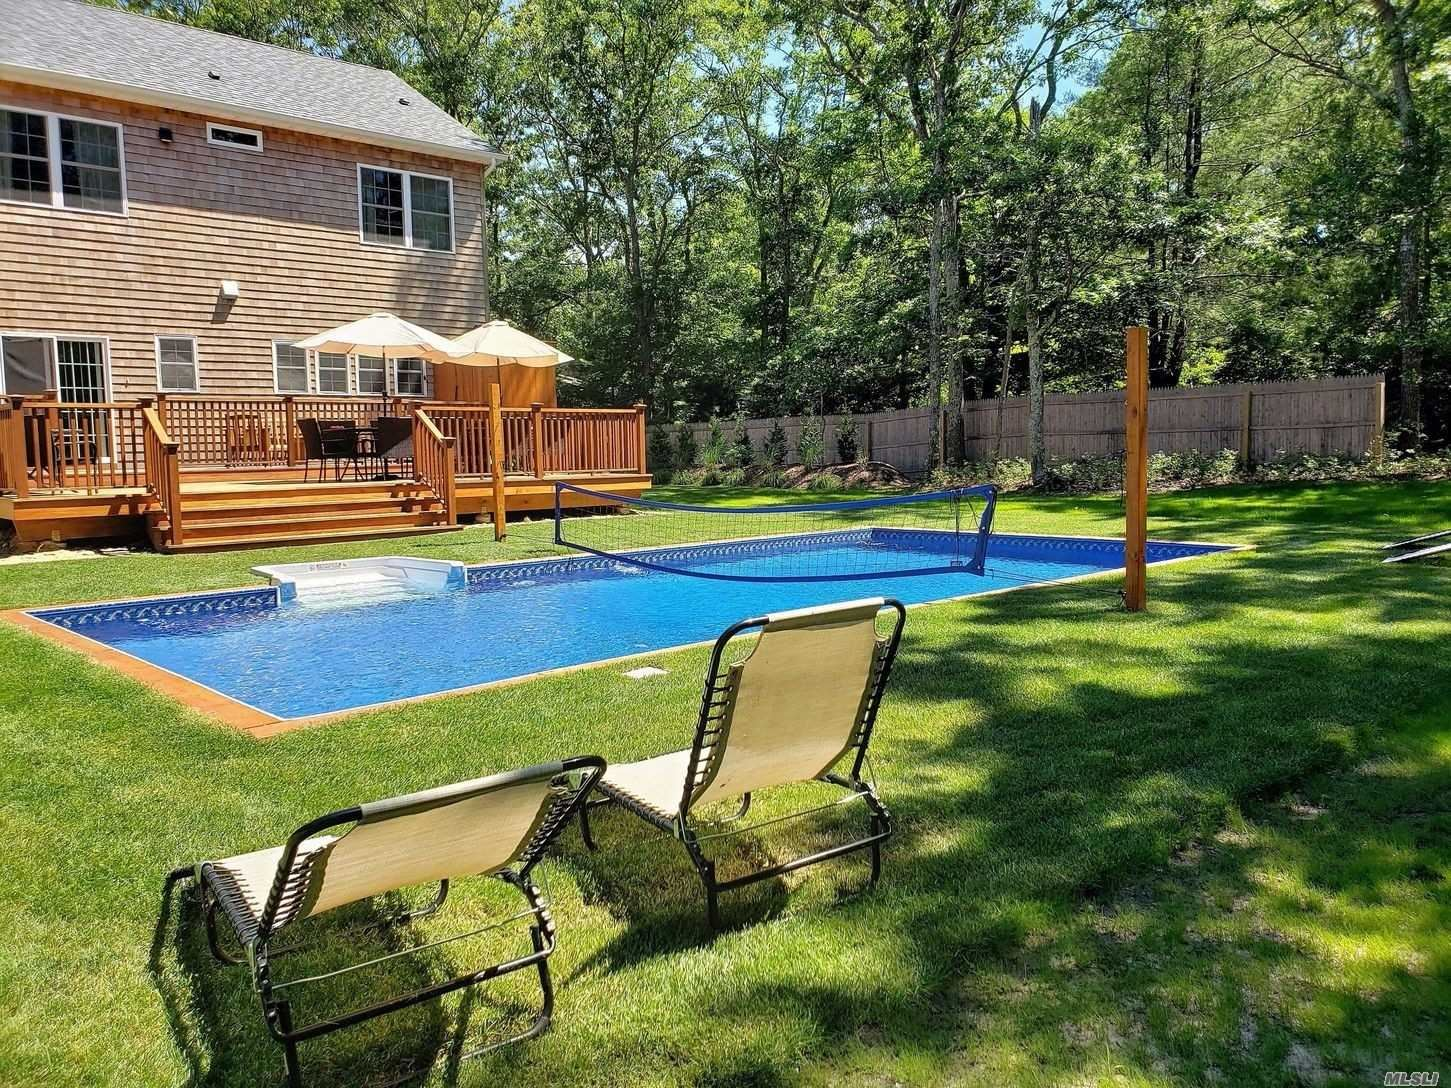 465 Springs Fireplace Rd, East Hampton, NY 11937 - MLS#: 3215783